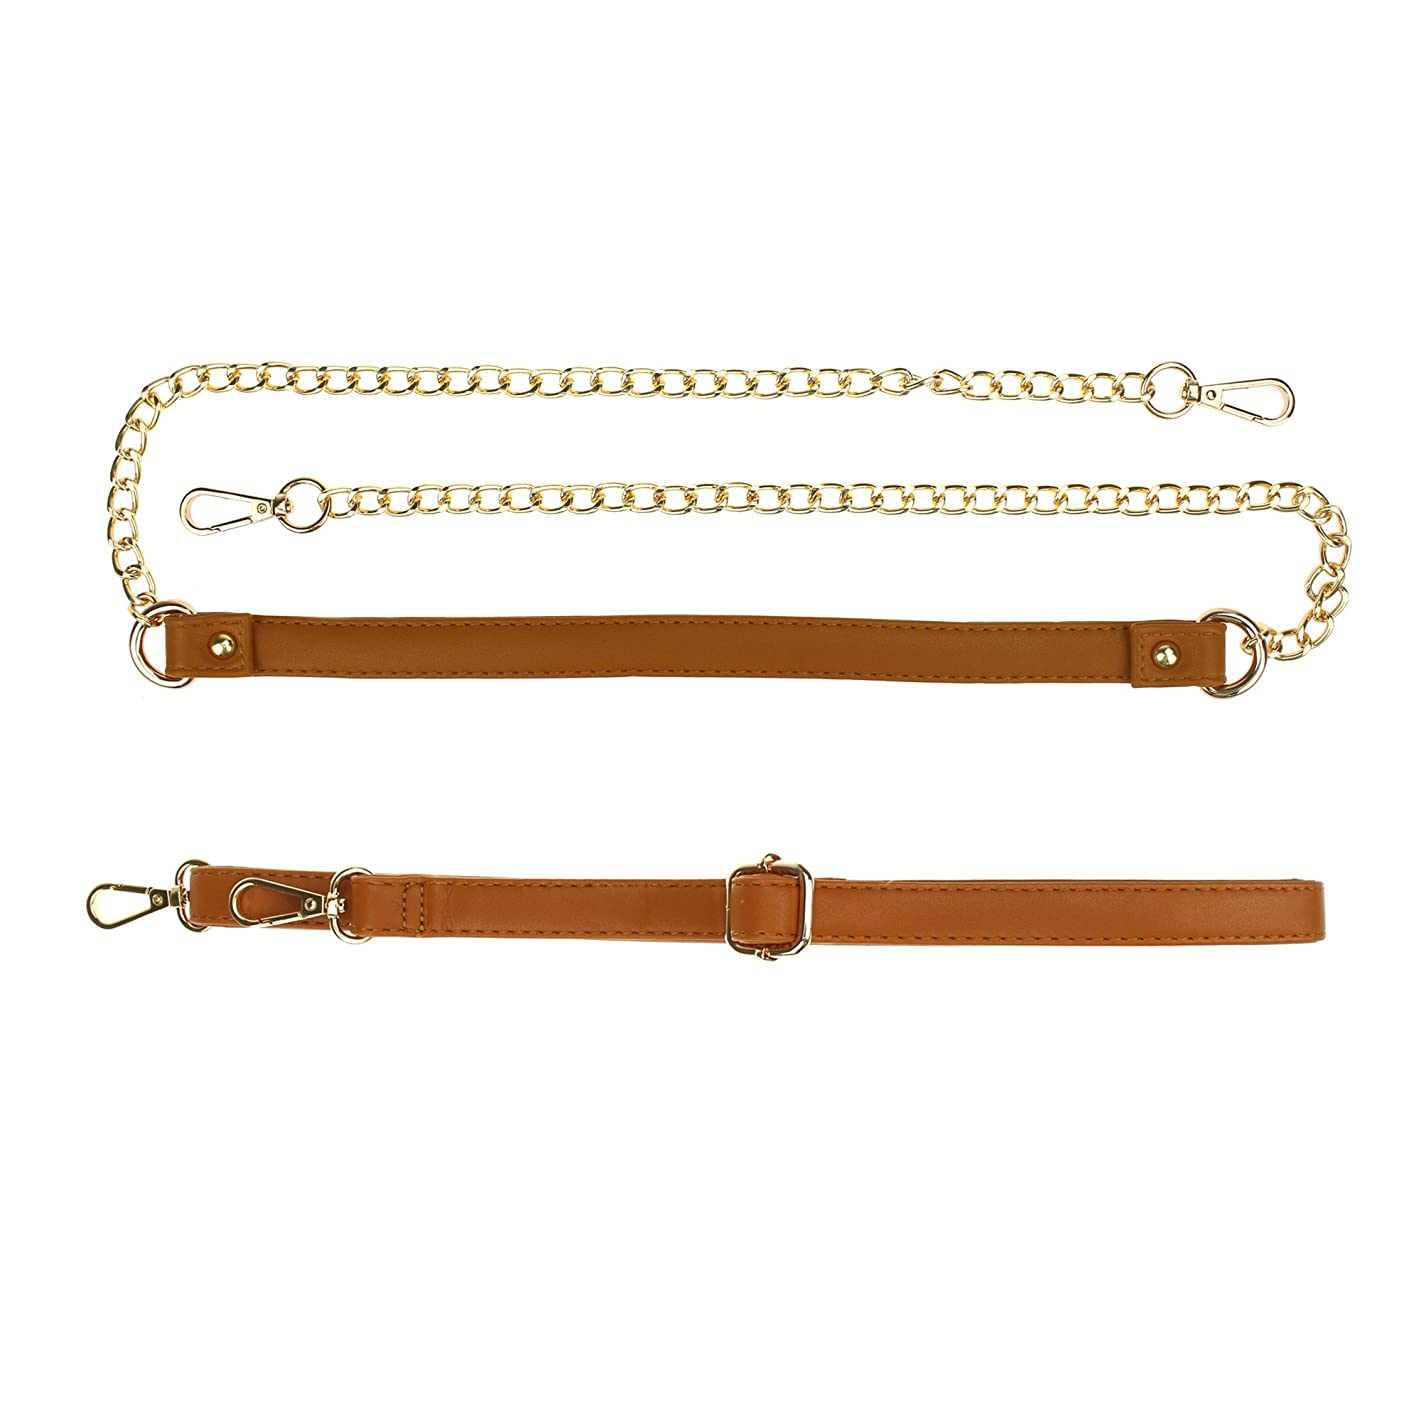 Coolcoco Luxury 43 Inches DIY Cross Body Leather Purse Replacement Chain Strap Set with Gold Metal Buckles Light Brown (Two Pieces/Set)